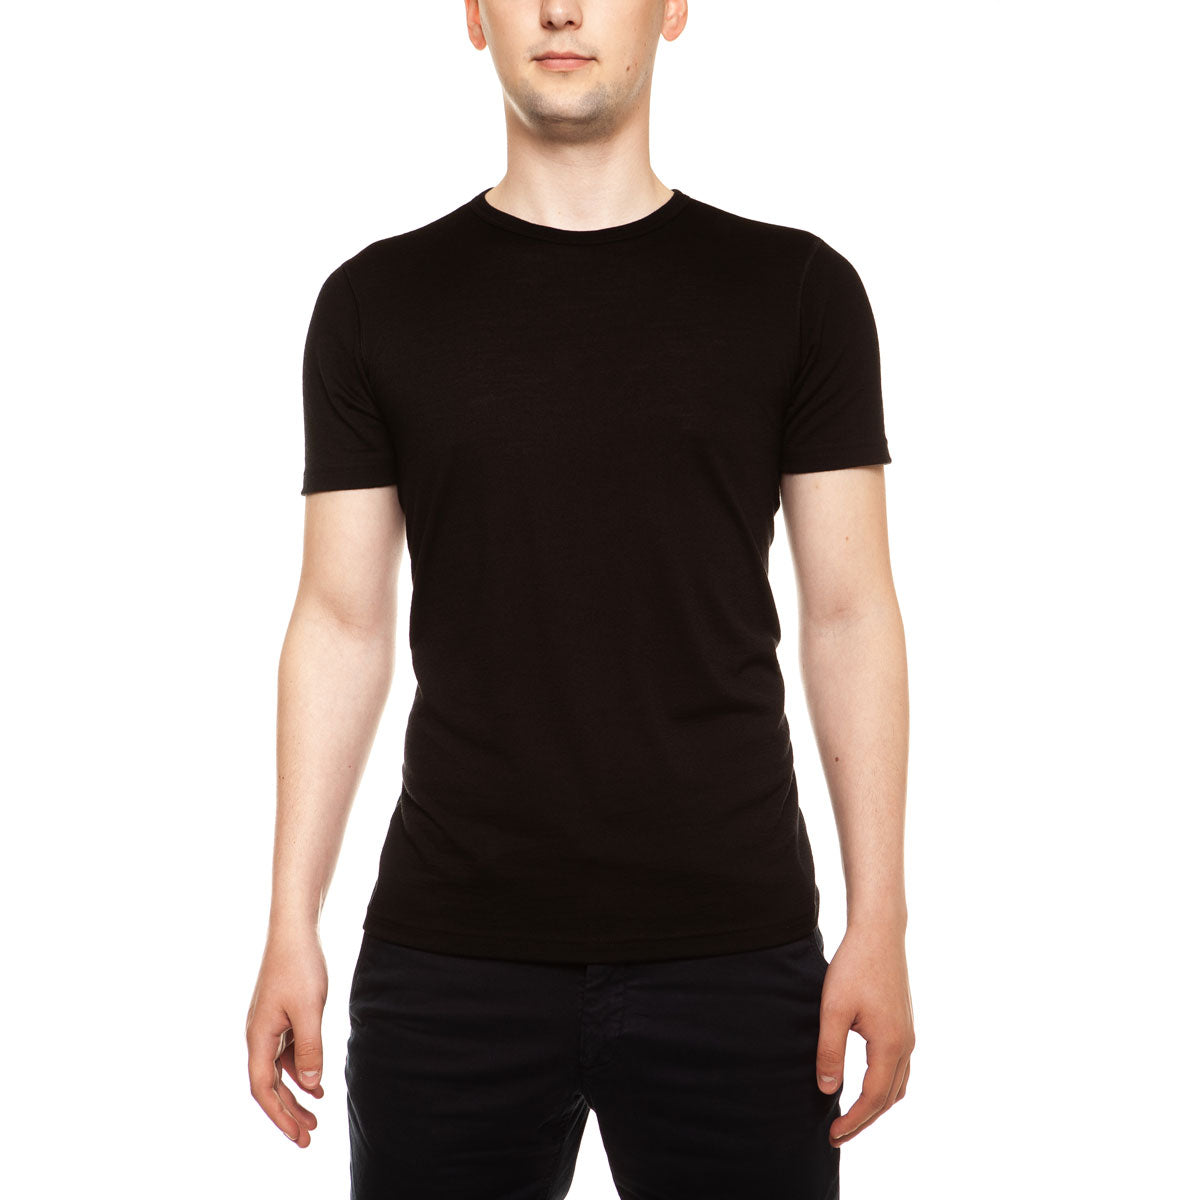 menique Men's Merino 160 Short Sleeve Crew Black Color